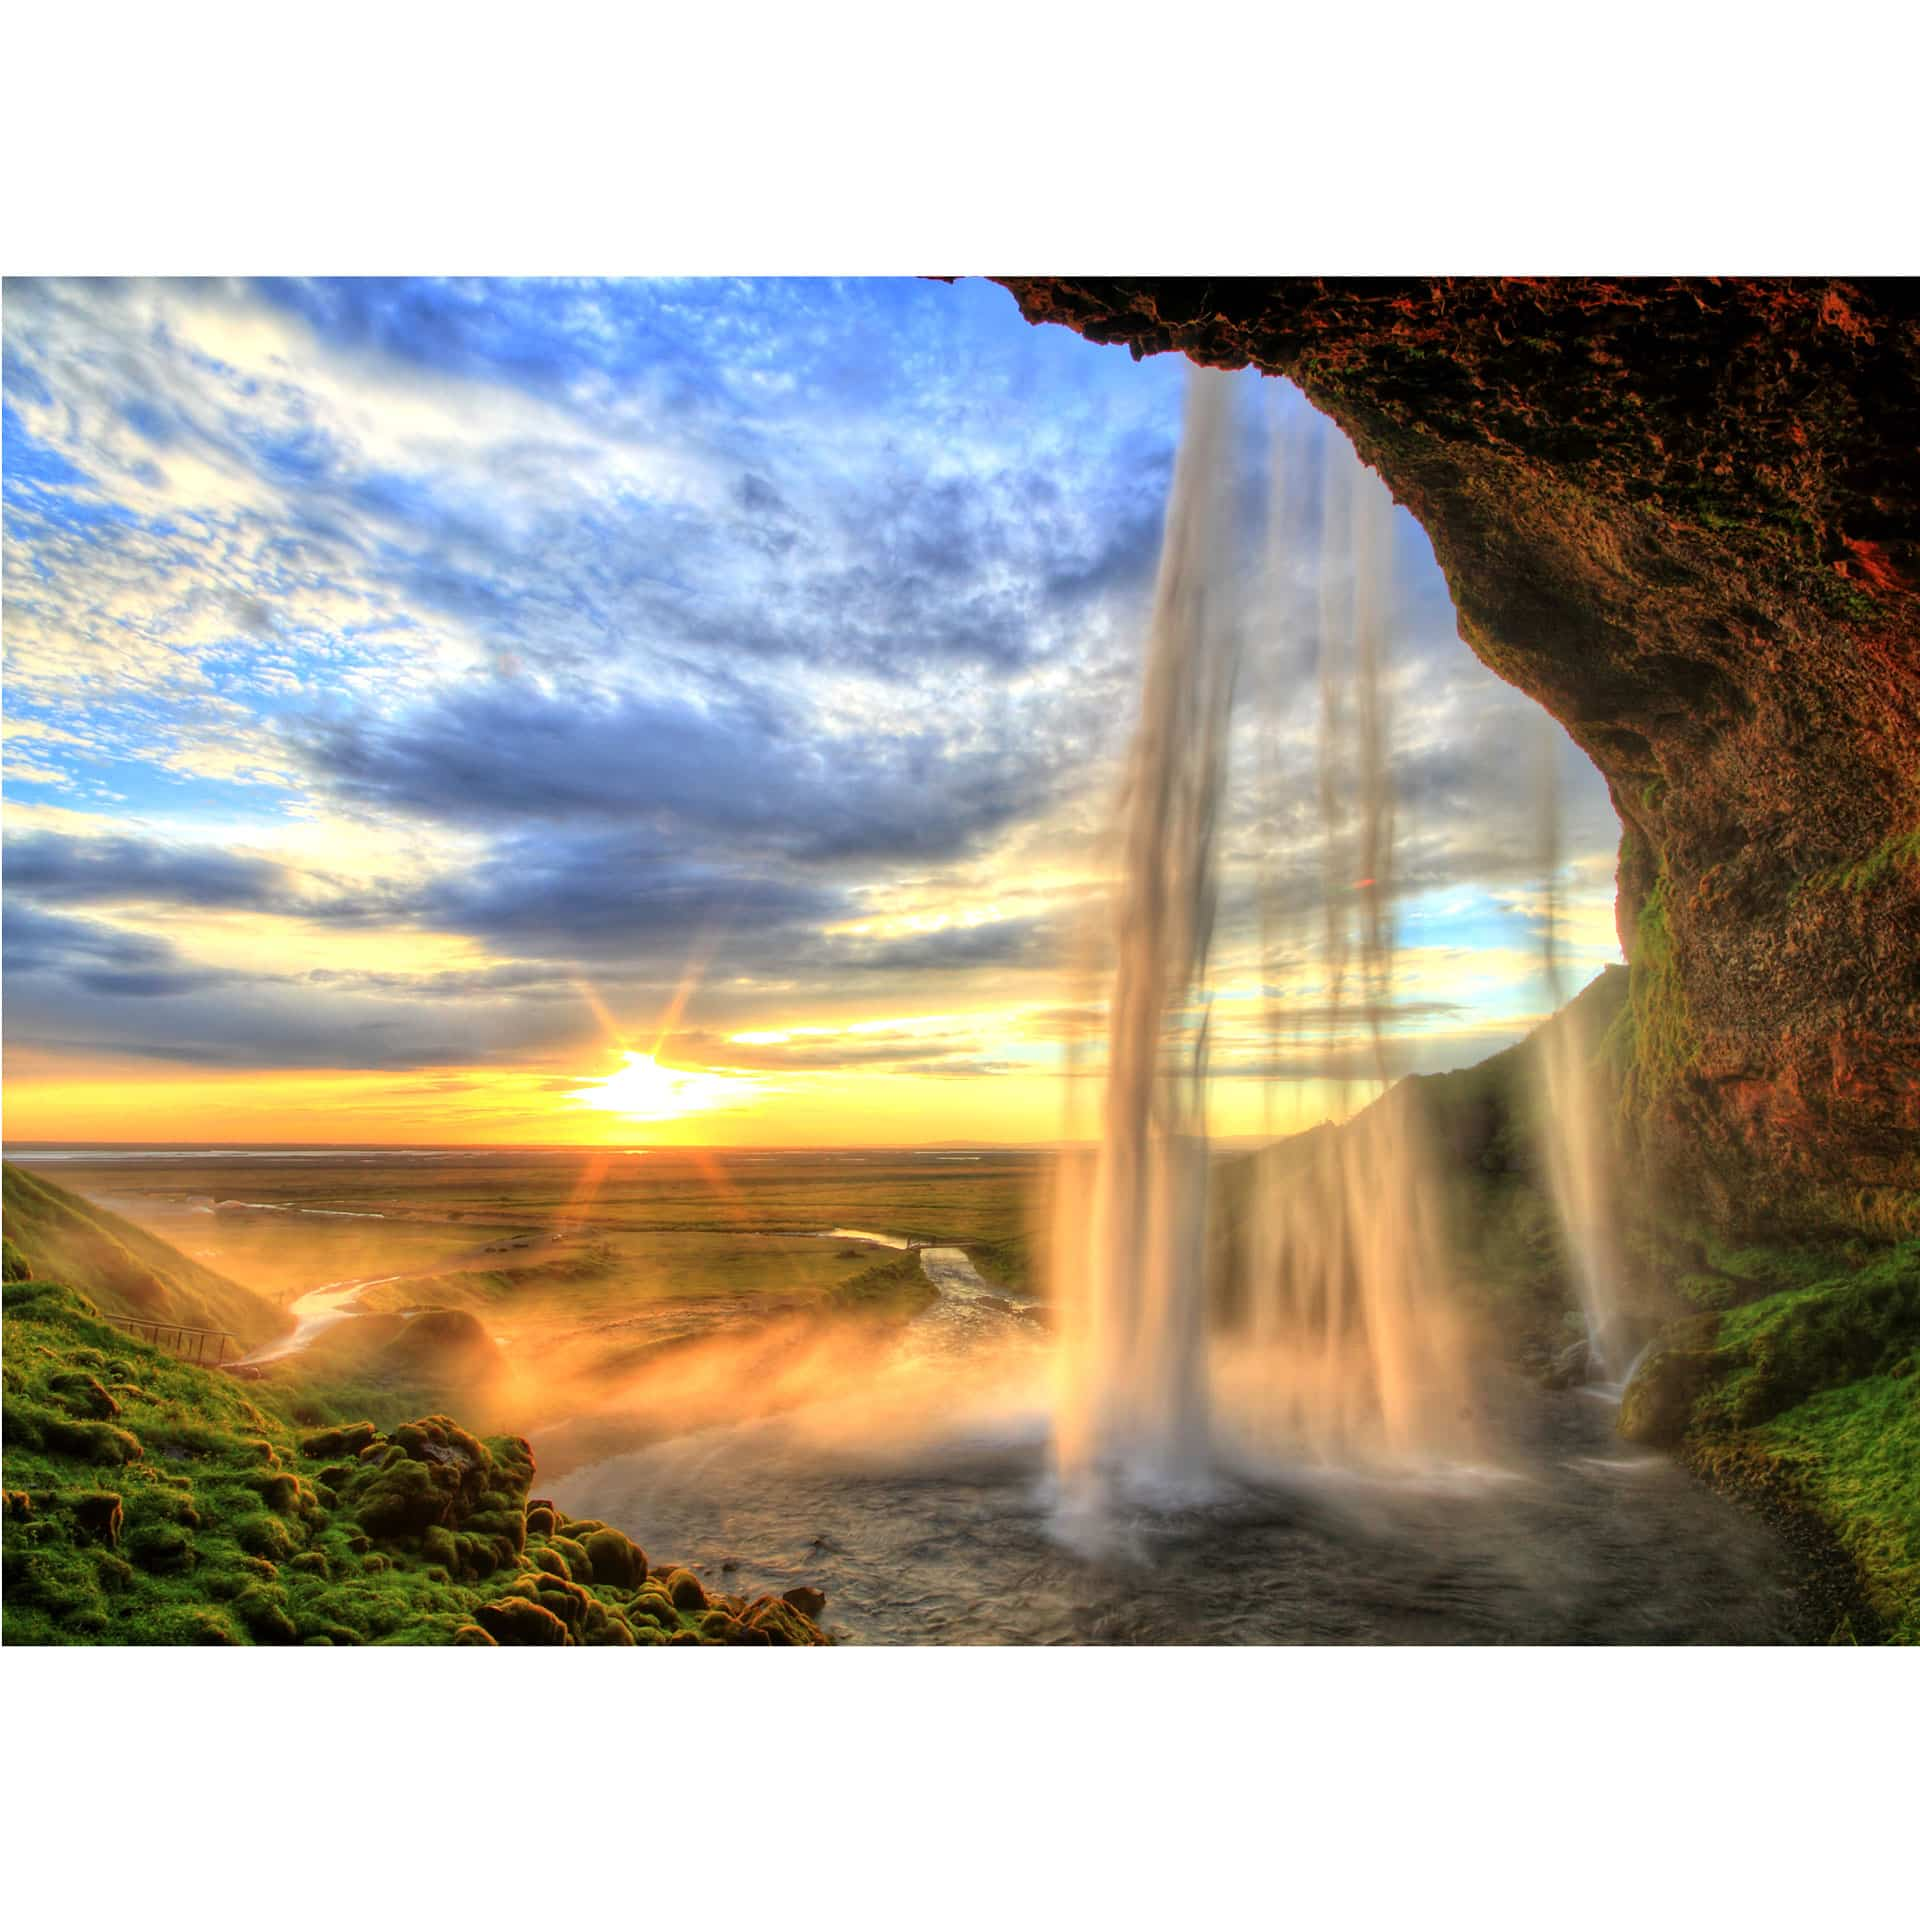 fototapete seljalandsfoss wasserfall von k l wall art. Black Bedroom Furniture Sets. Home Design Ideas